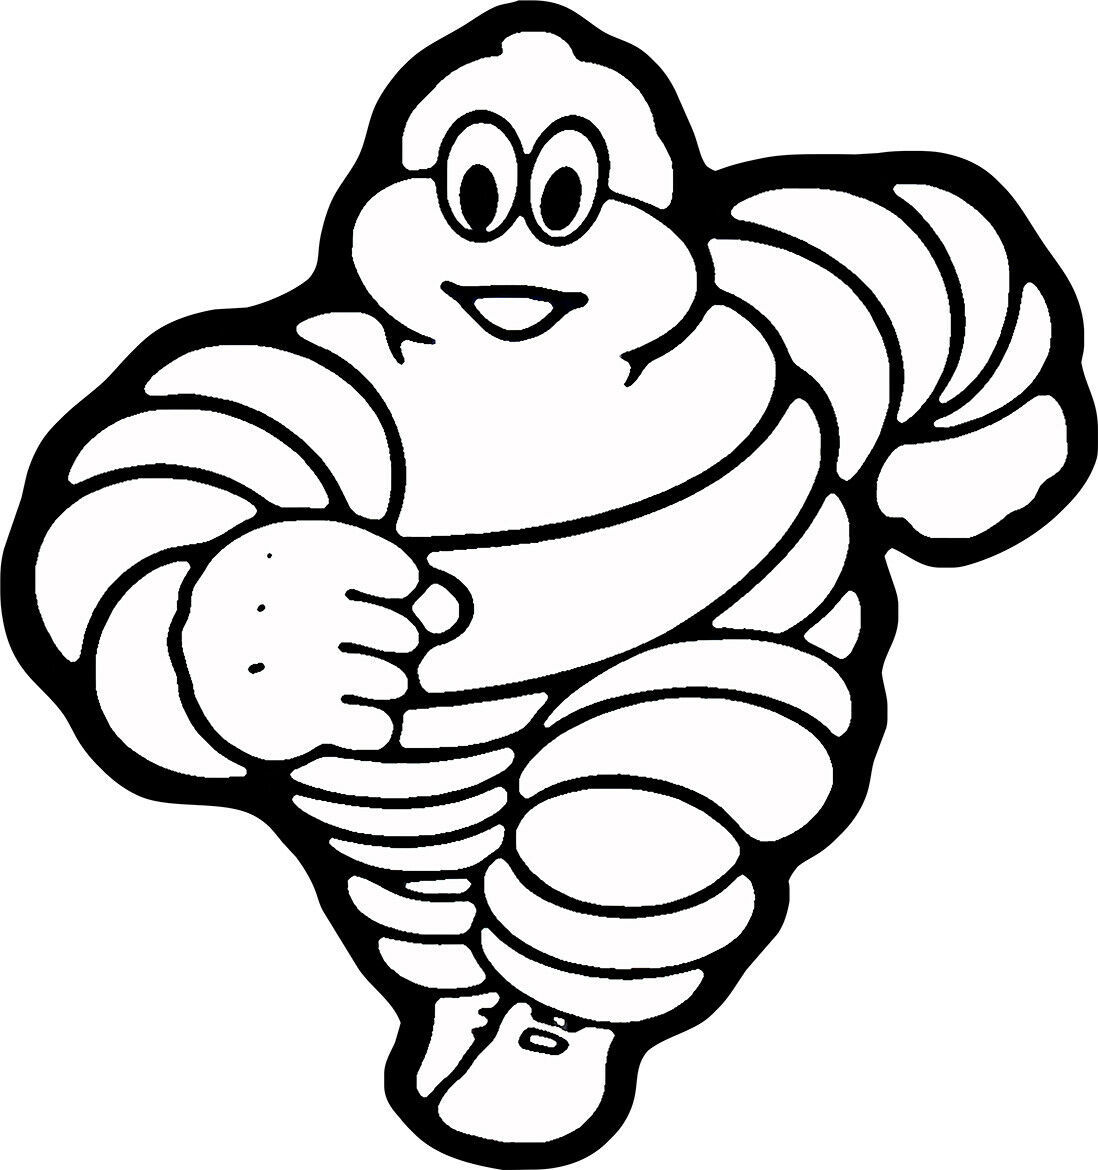 Primary image for Michelin Man Plasma Cut Metal Sign